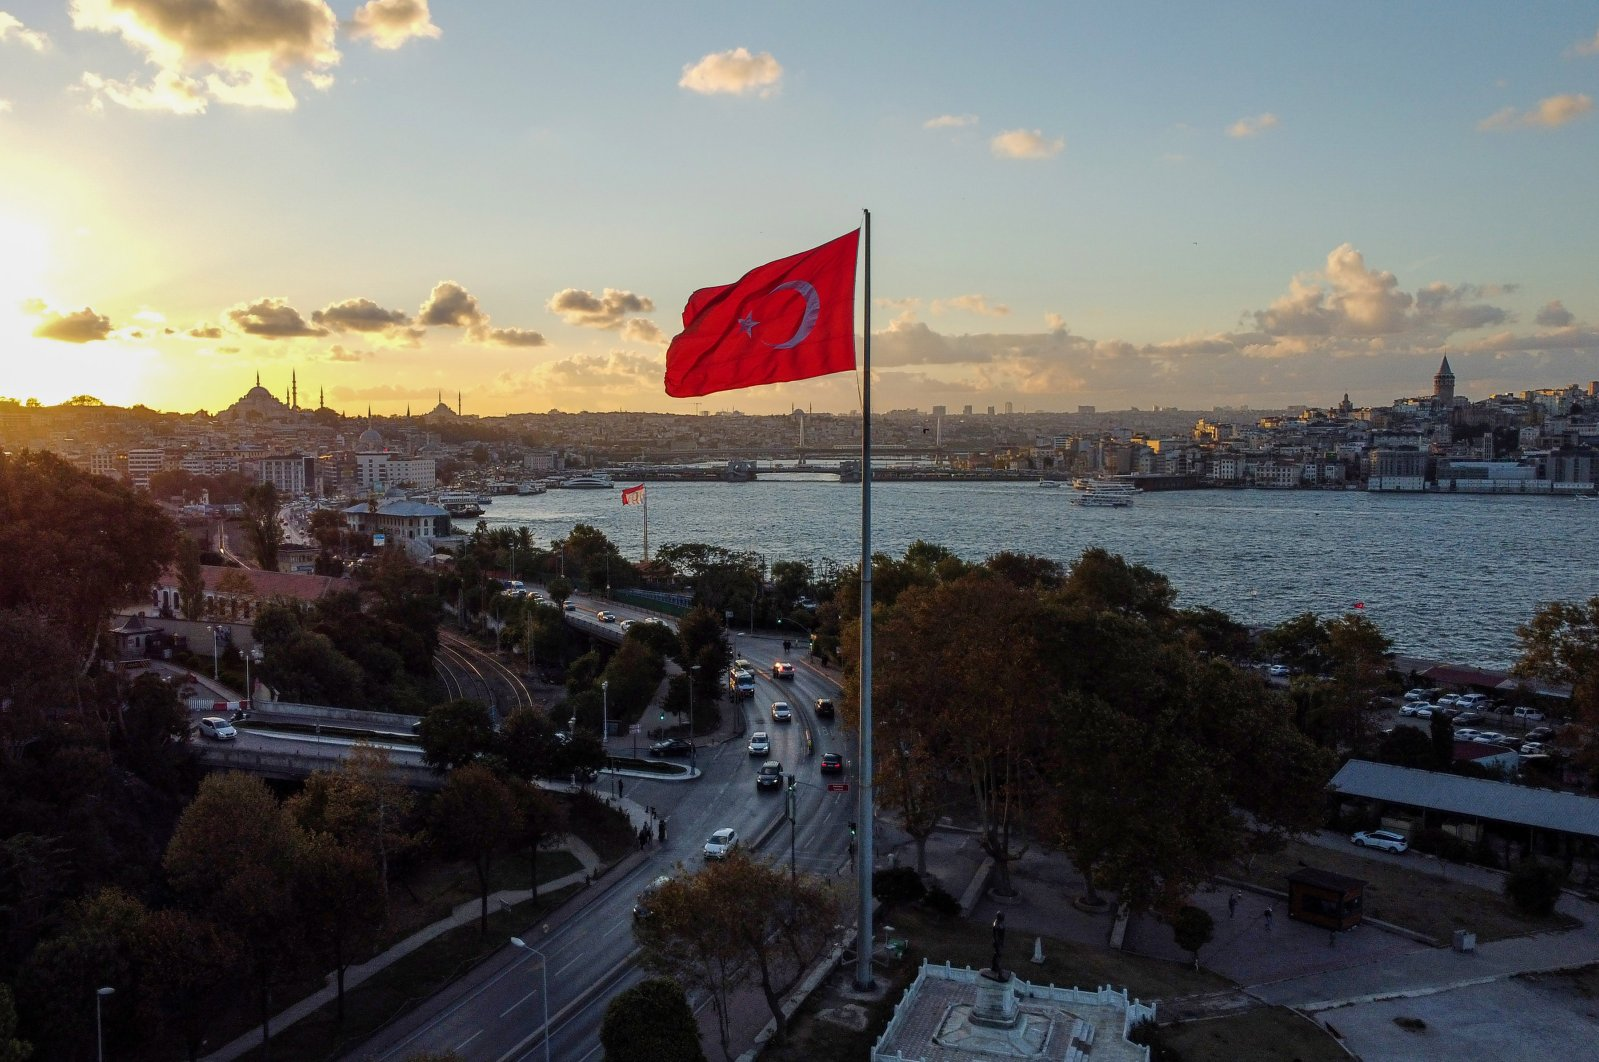 A Turkish flag by the Bosporus at the evening sunset in Istanbul, Turkey, Oct. 4, 2021. (Photo by Getty Images)